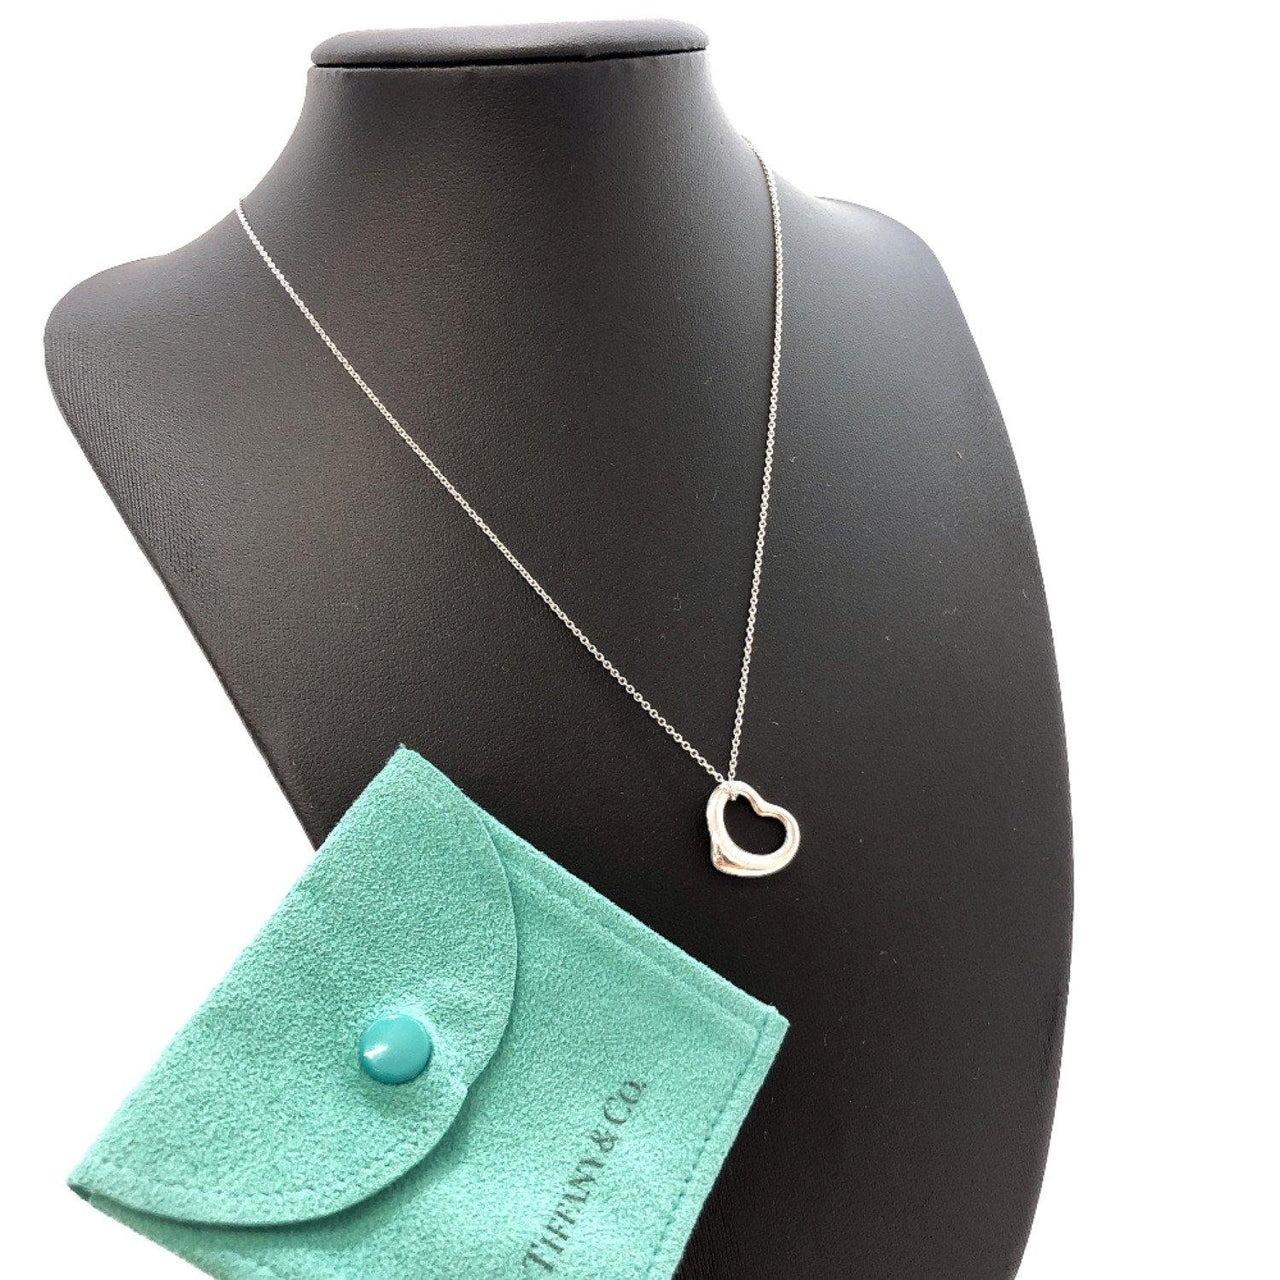 TIFFANY&Co. Necklace Open heart Silver925 Silver Women Used - JP-BRANDS.com